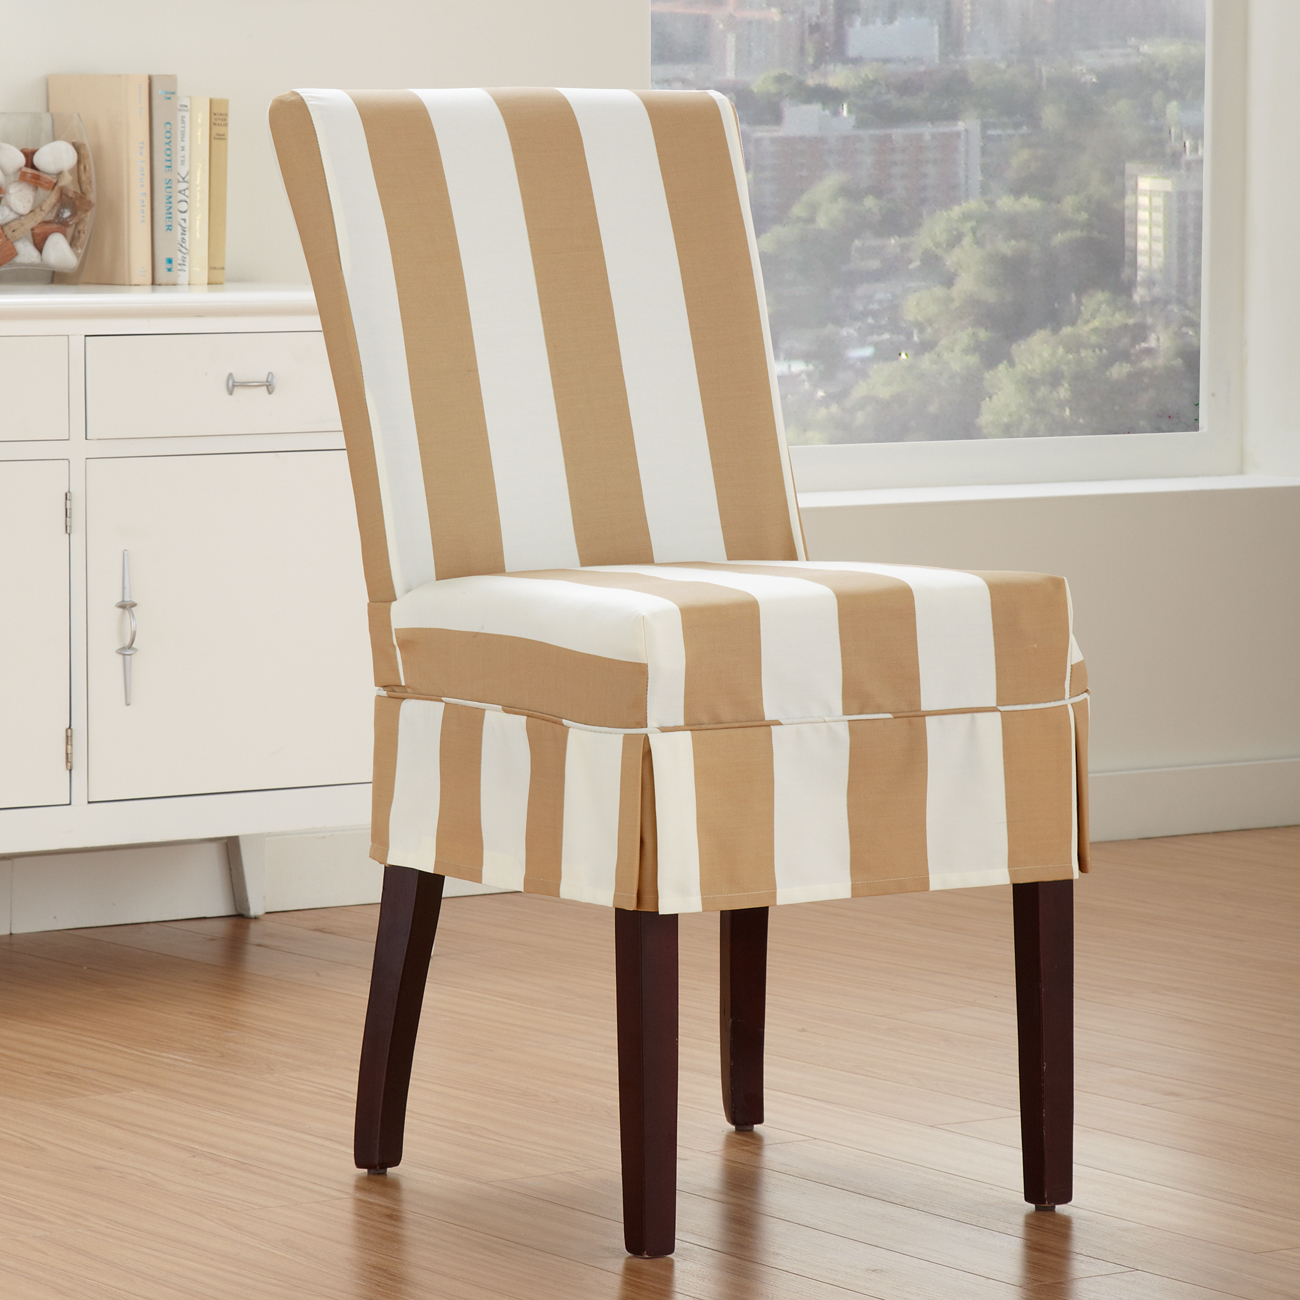 Slipcover for dining chairs Photo - 1